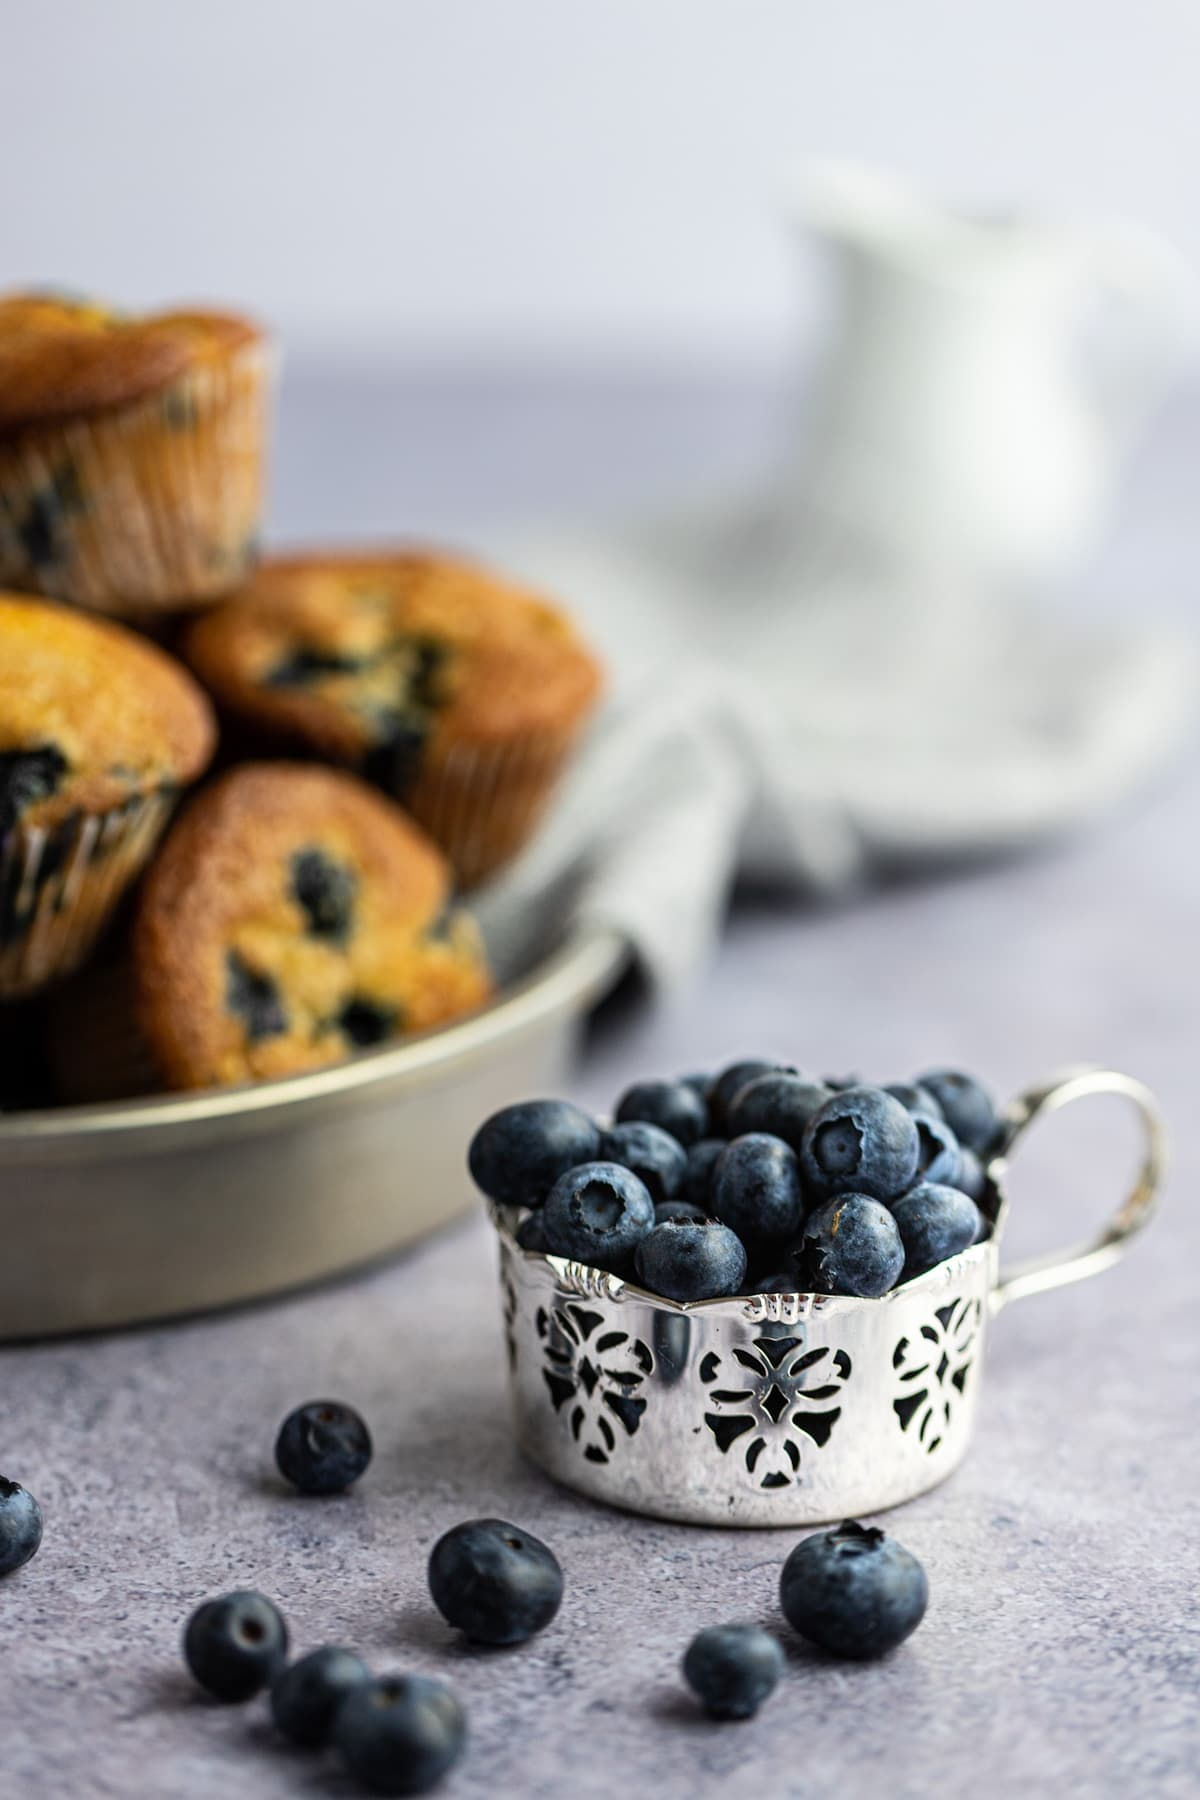 Close up photo of a silver laced cup filled with fresh blueberries, a tin of muffins out of focus in the background.